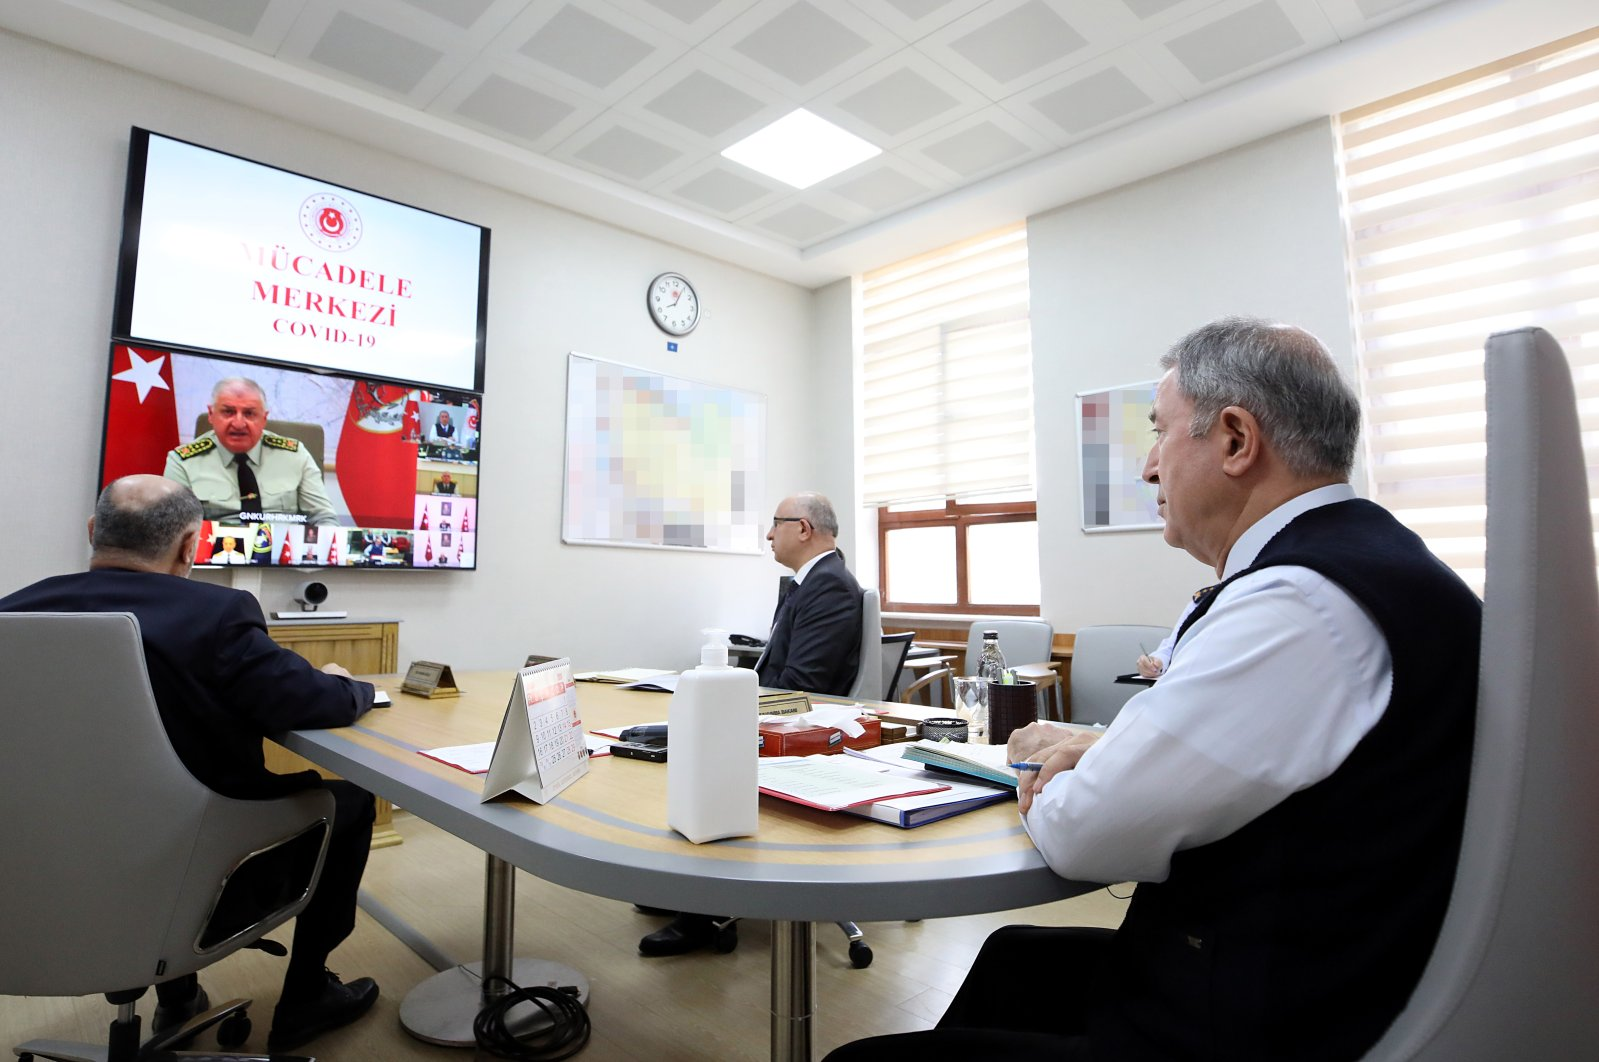 Defense Minister Hulusi Akar holds teleconference with military officials at the Anti-Coronavirus Fight Center (KOMMER) in Ankara on Tuesday, March 24, 2020 (AA Photo)